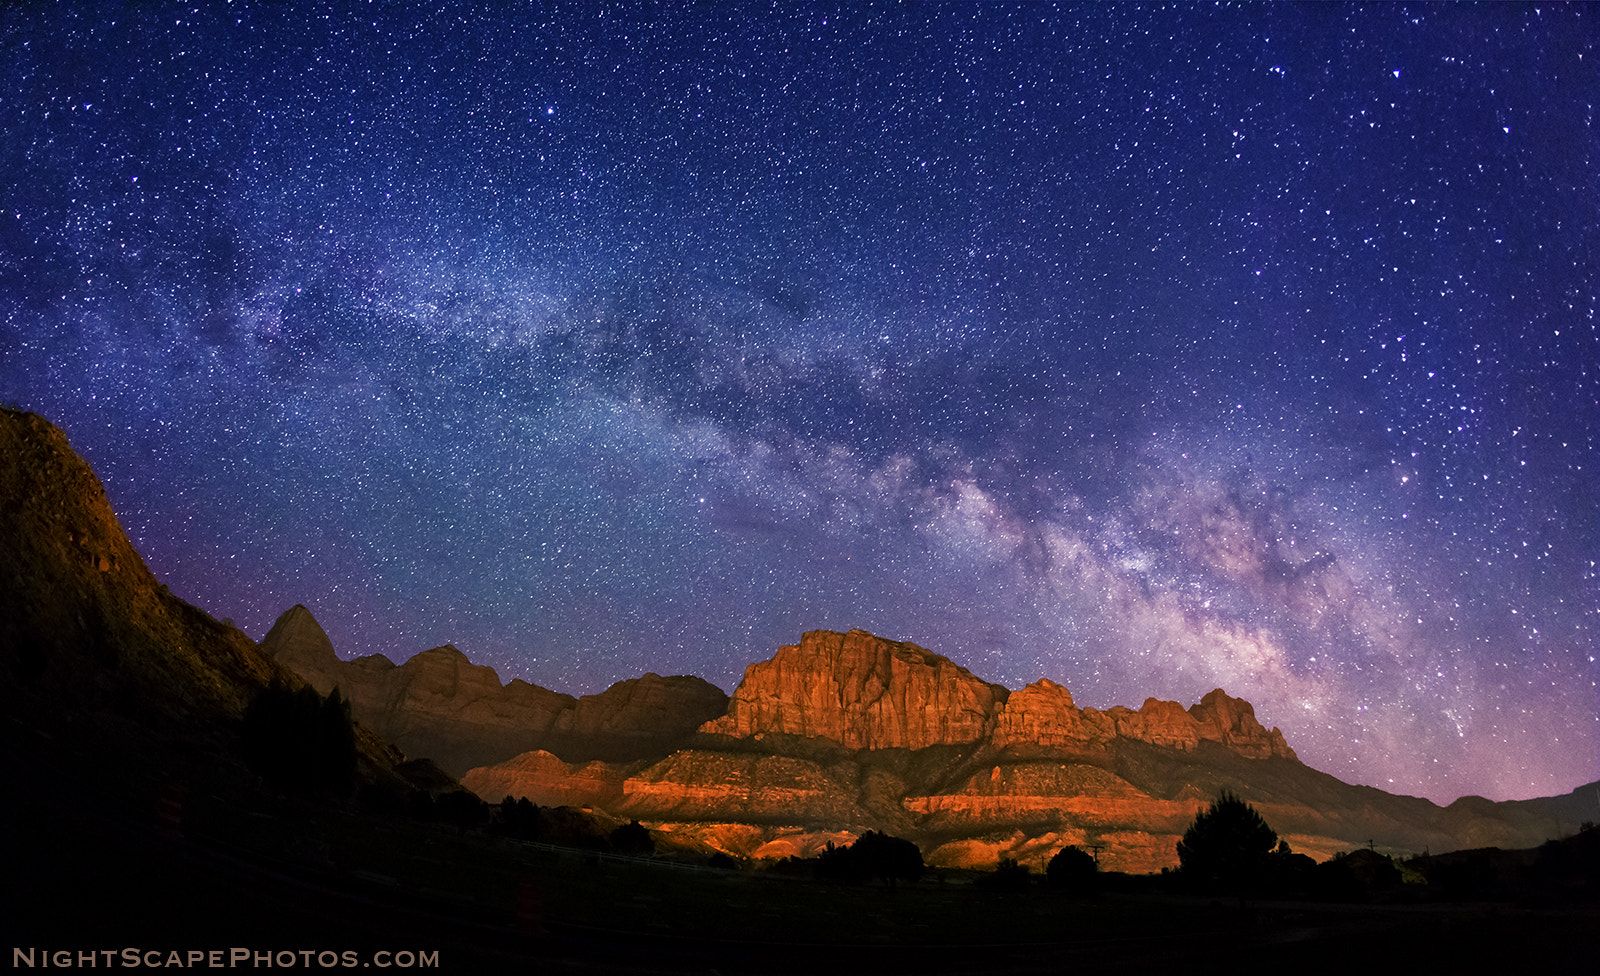 Photograph Milky Way over Zions by Royce's NightScapes on 500px